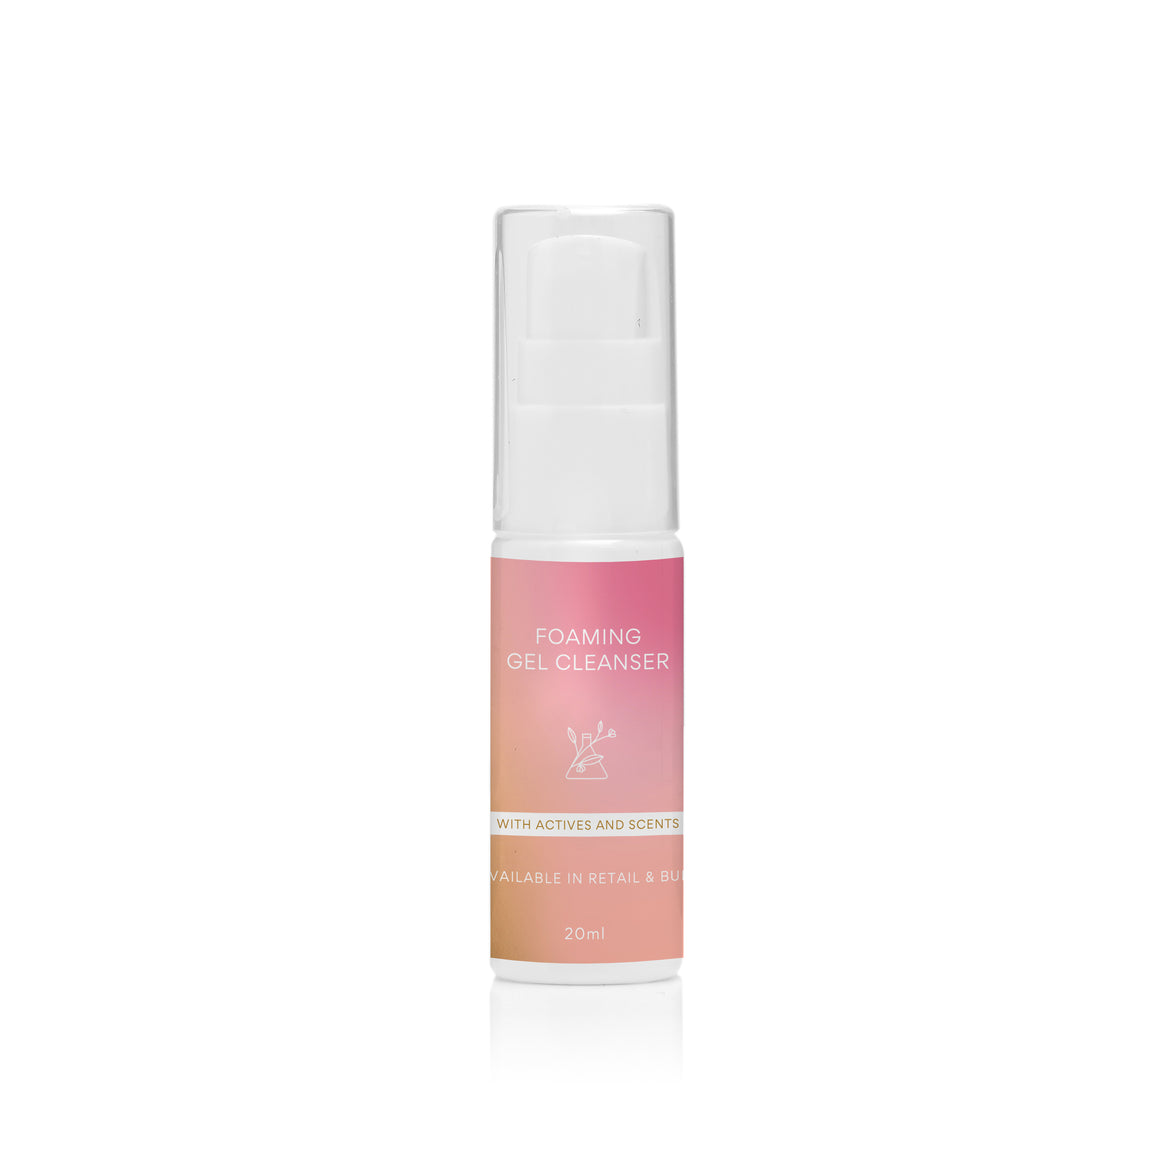 CUSTOMISED PRODUCT Gel Cleanser with Scent & Actives - 20ml - $9.95